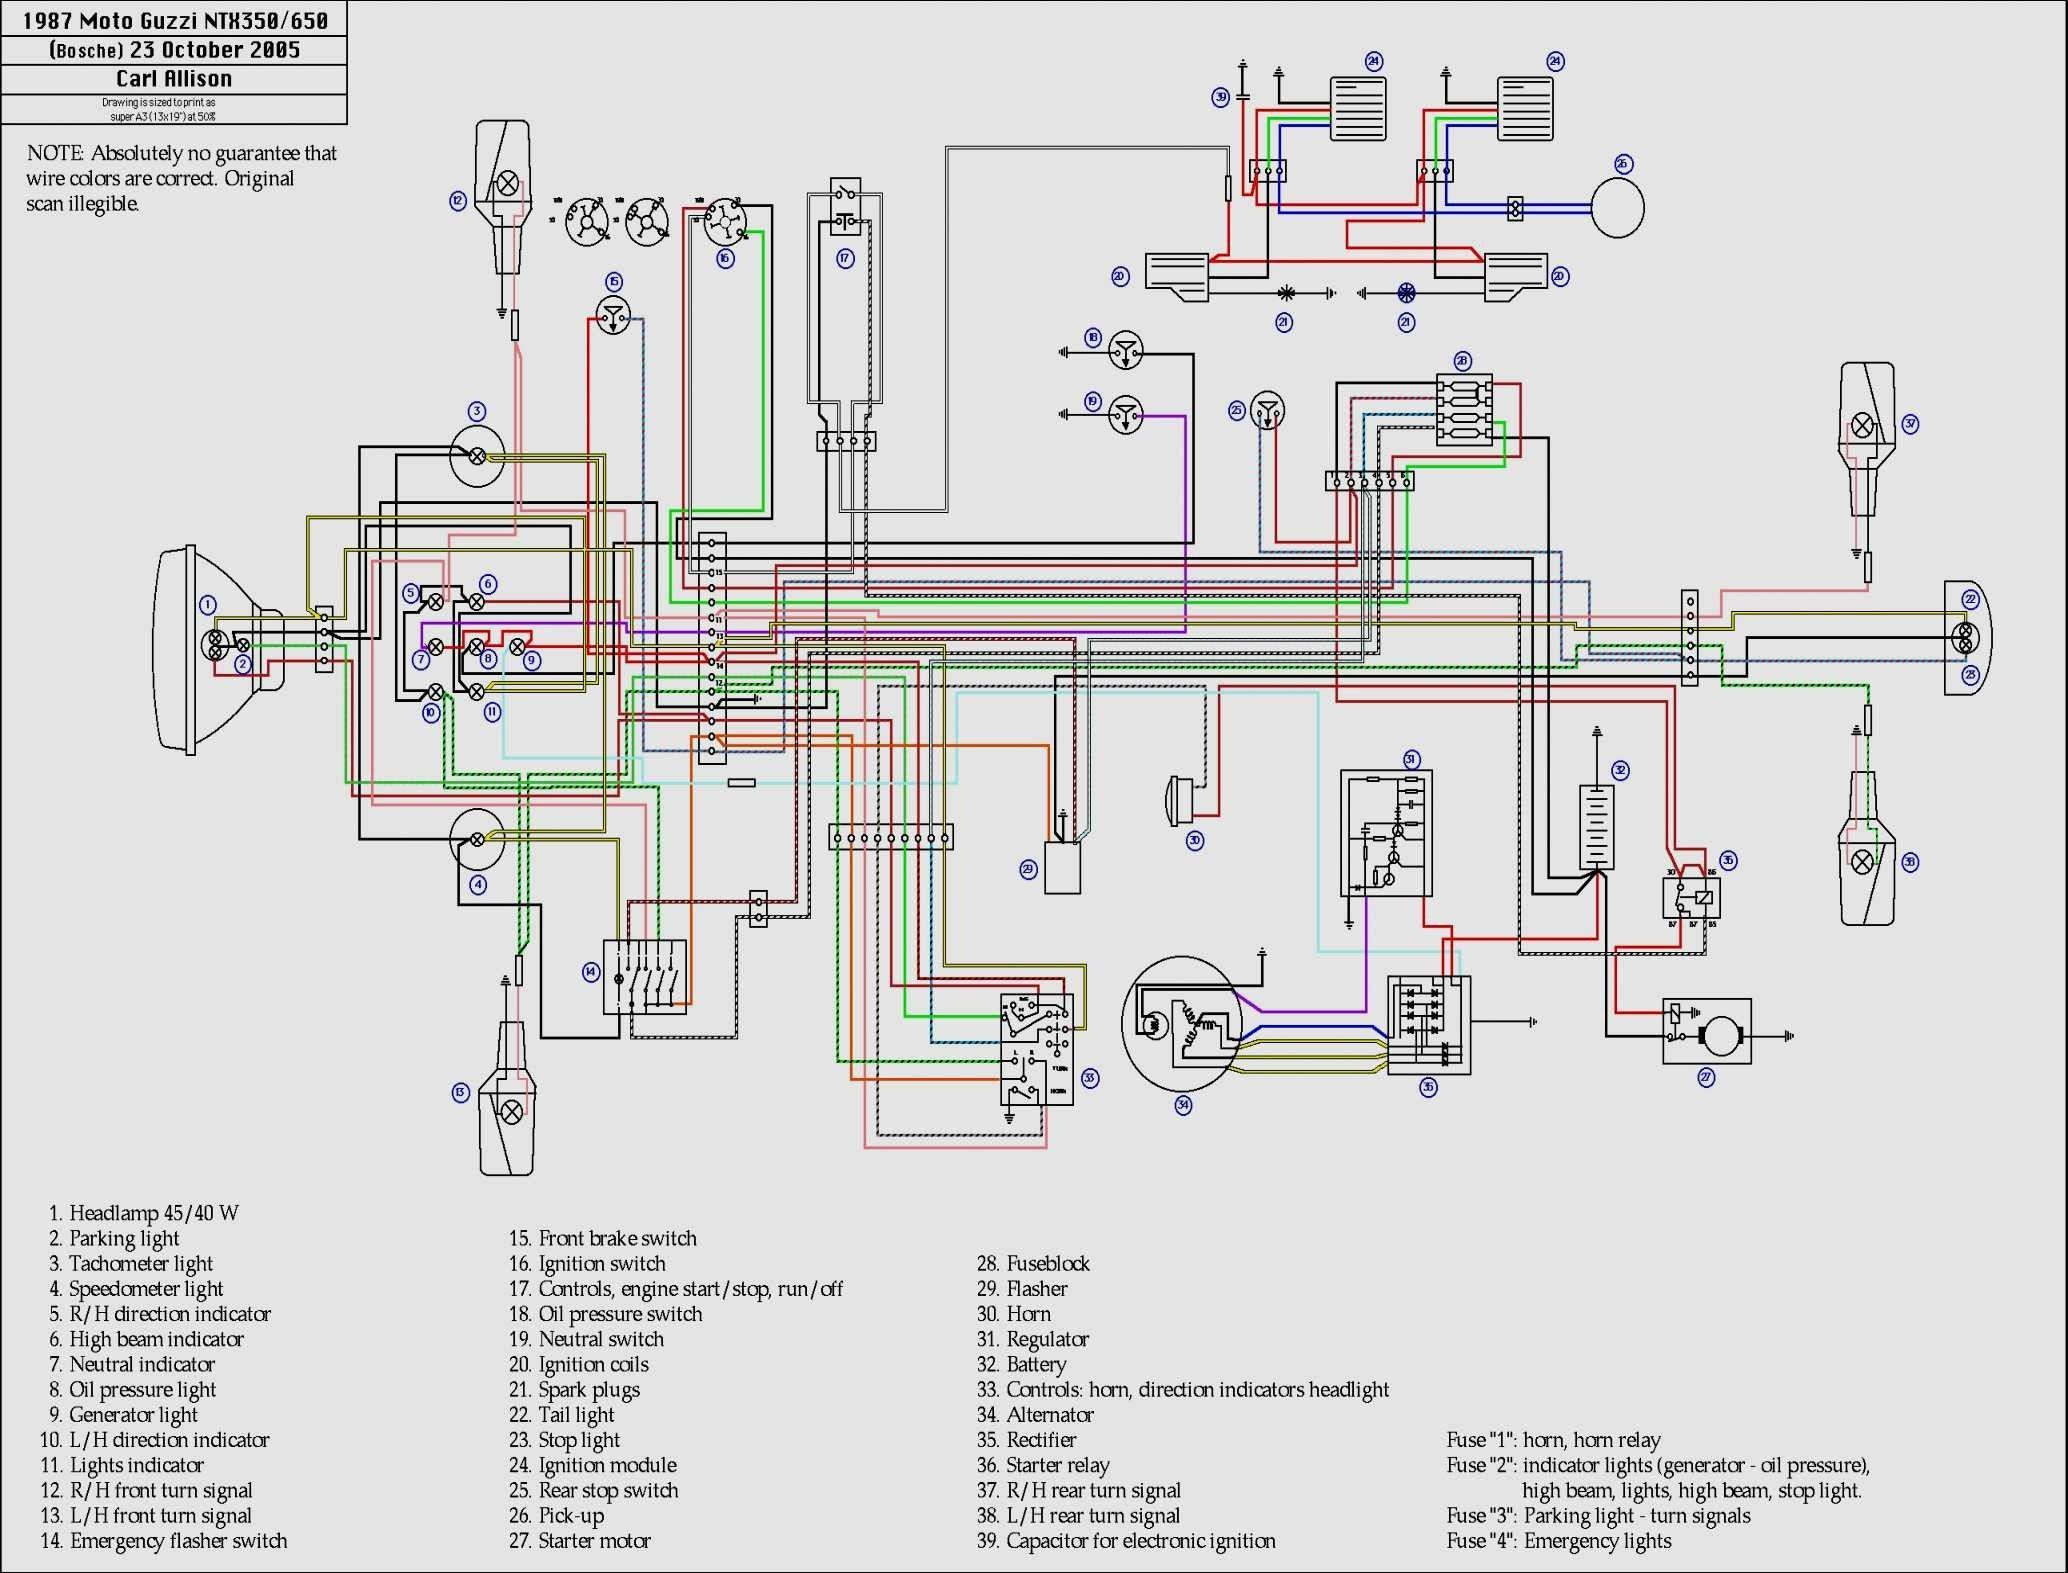 Unique Wiring Diagram For Ignition Switch Motorcycle Wiring Electrical Wiring Diagram Electrical Diagram